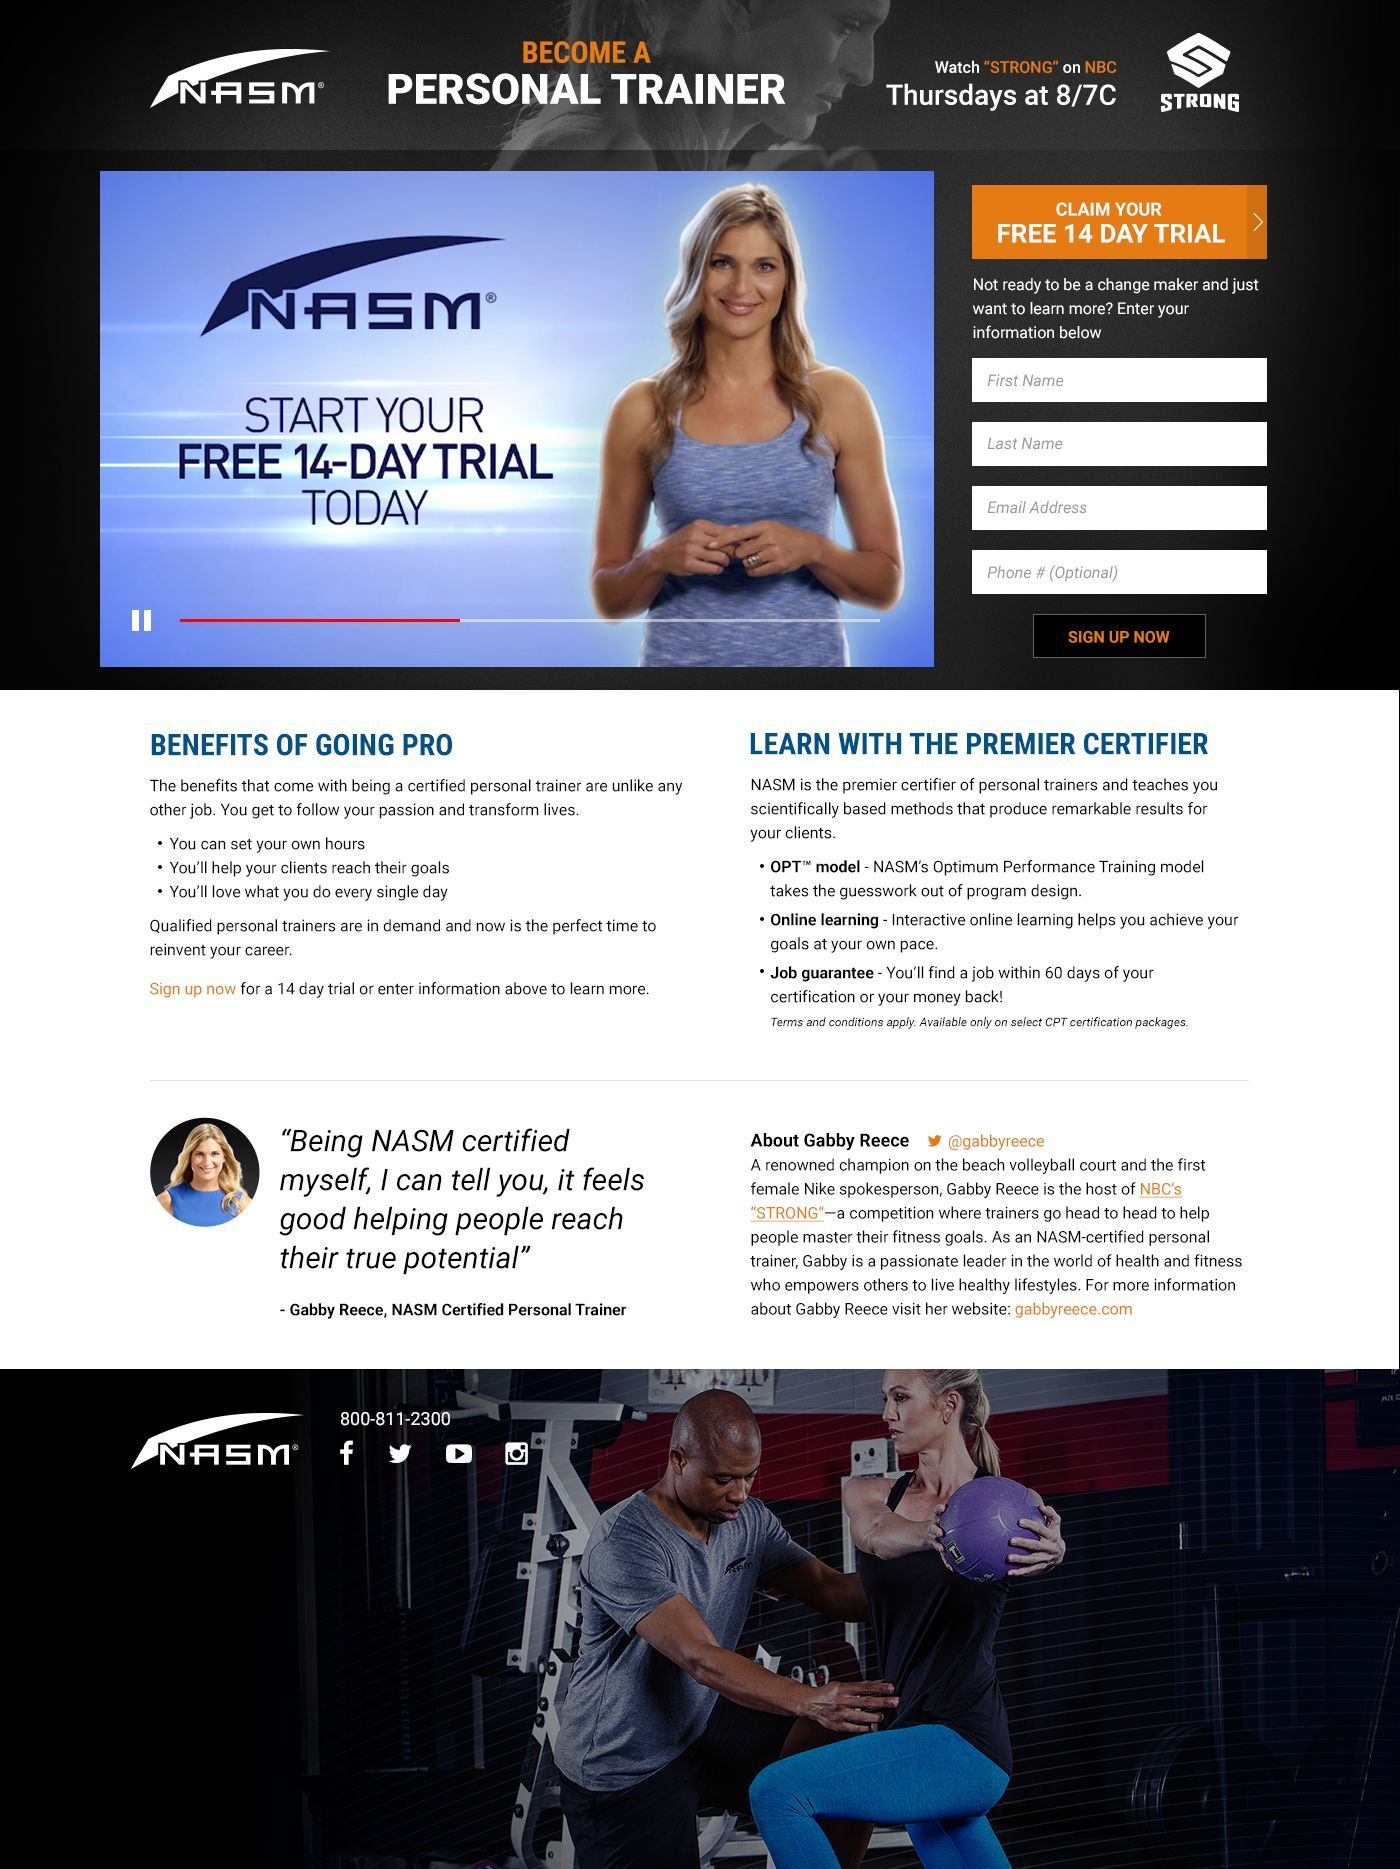 Become a personal trainer watch nasm on nbcs strong become a personal trainer xflitez Images